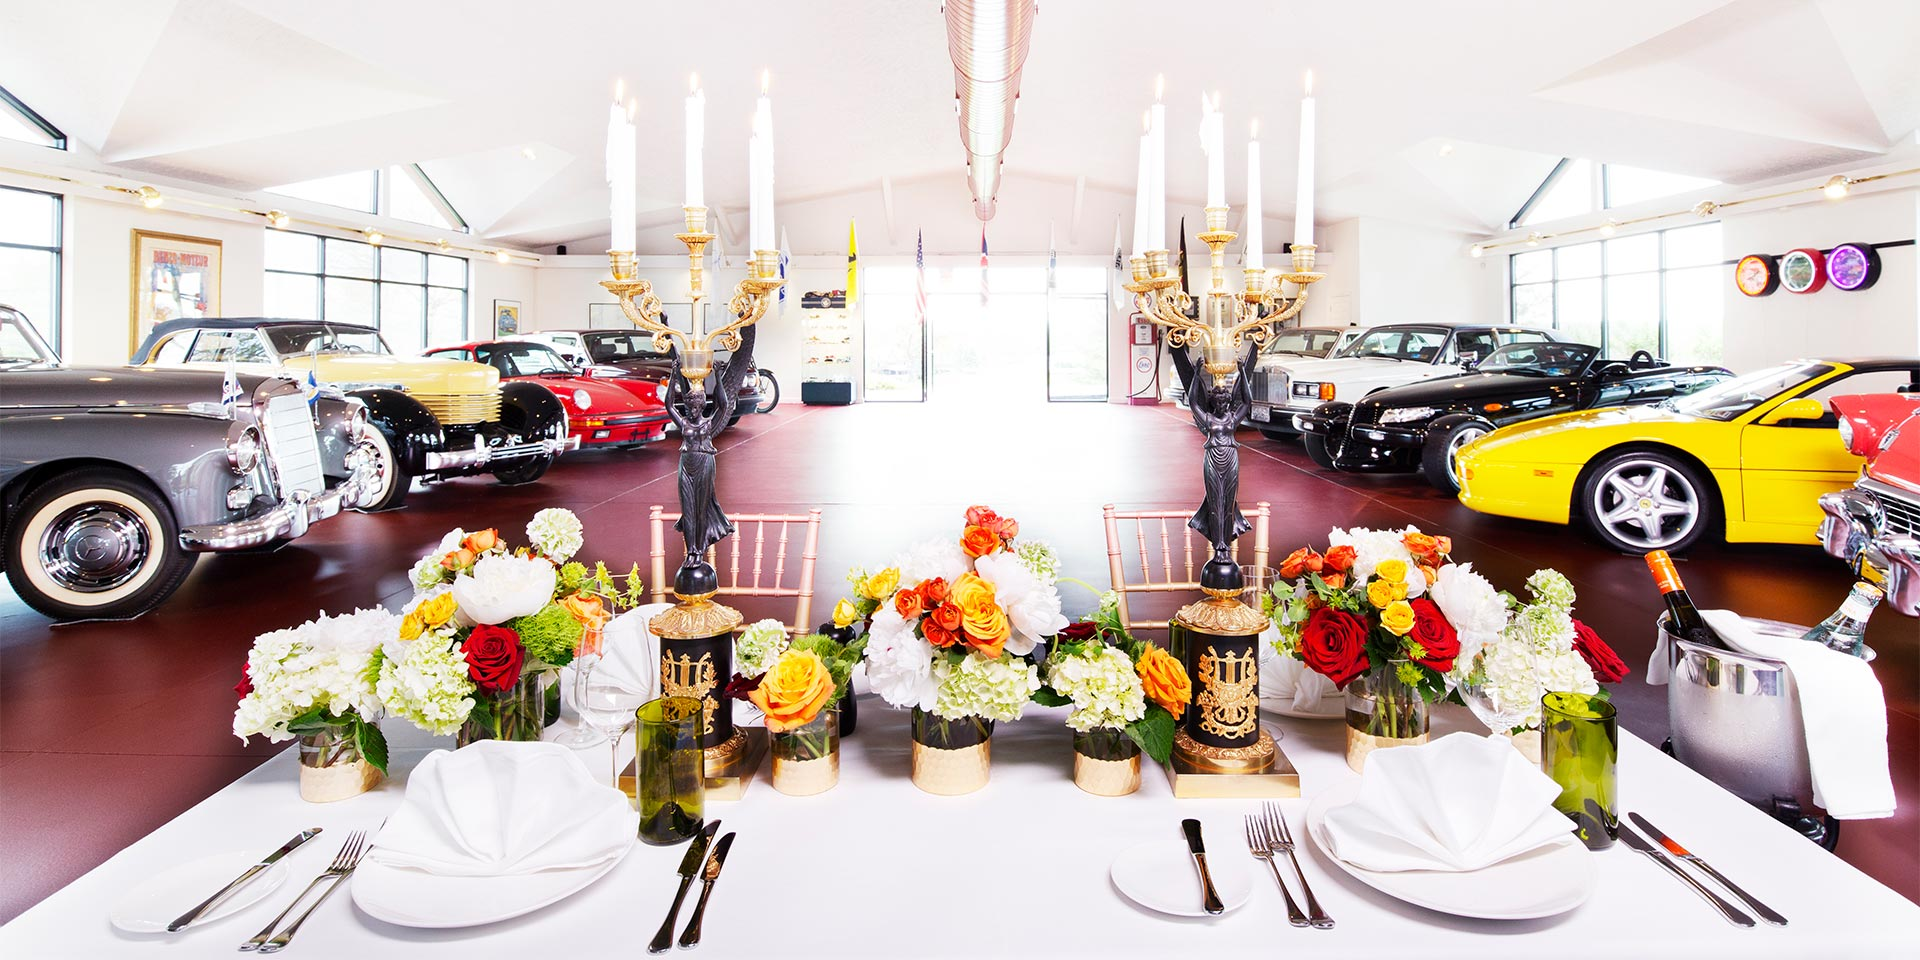 car showroom with table in front with flowers and candles